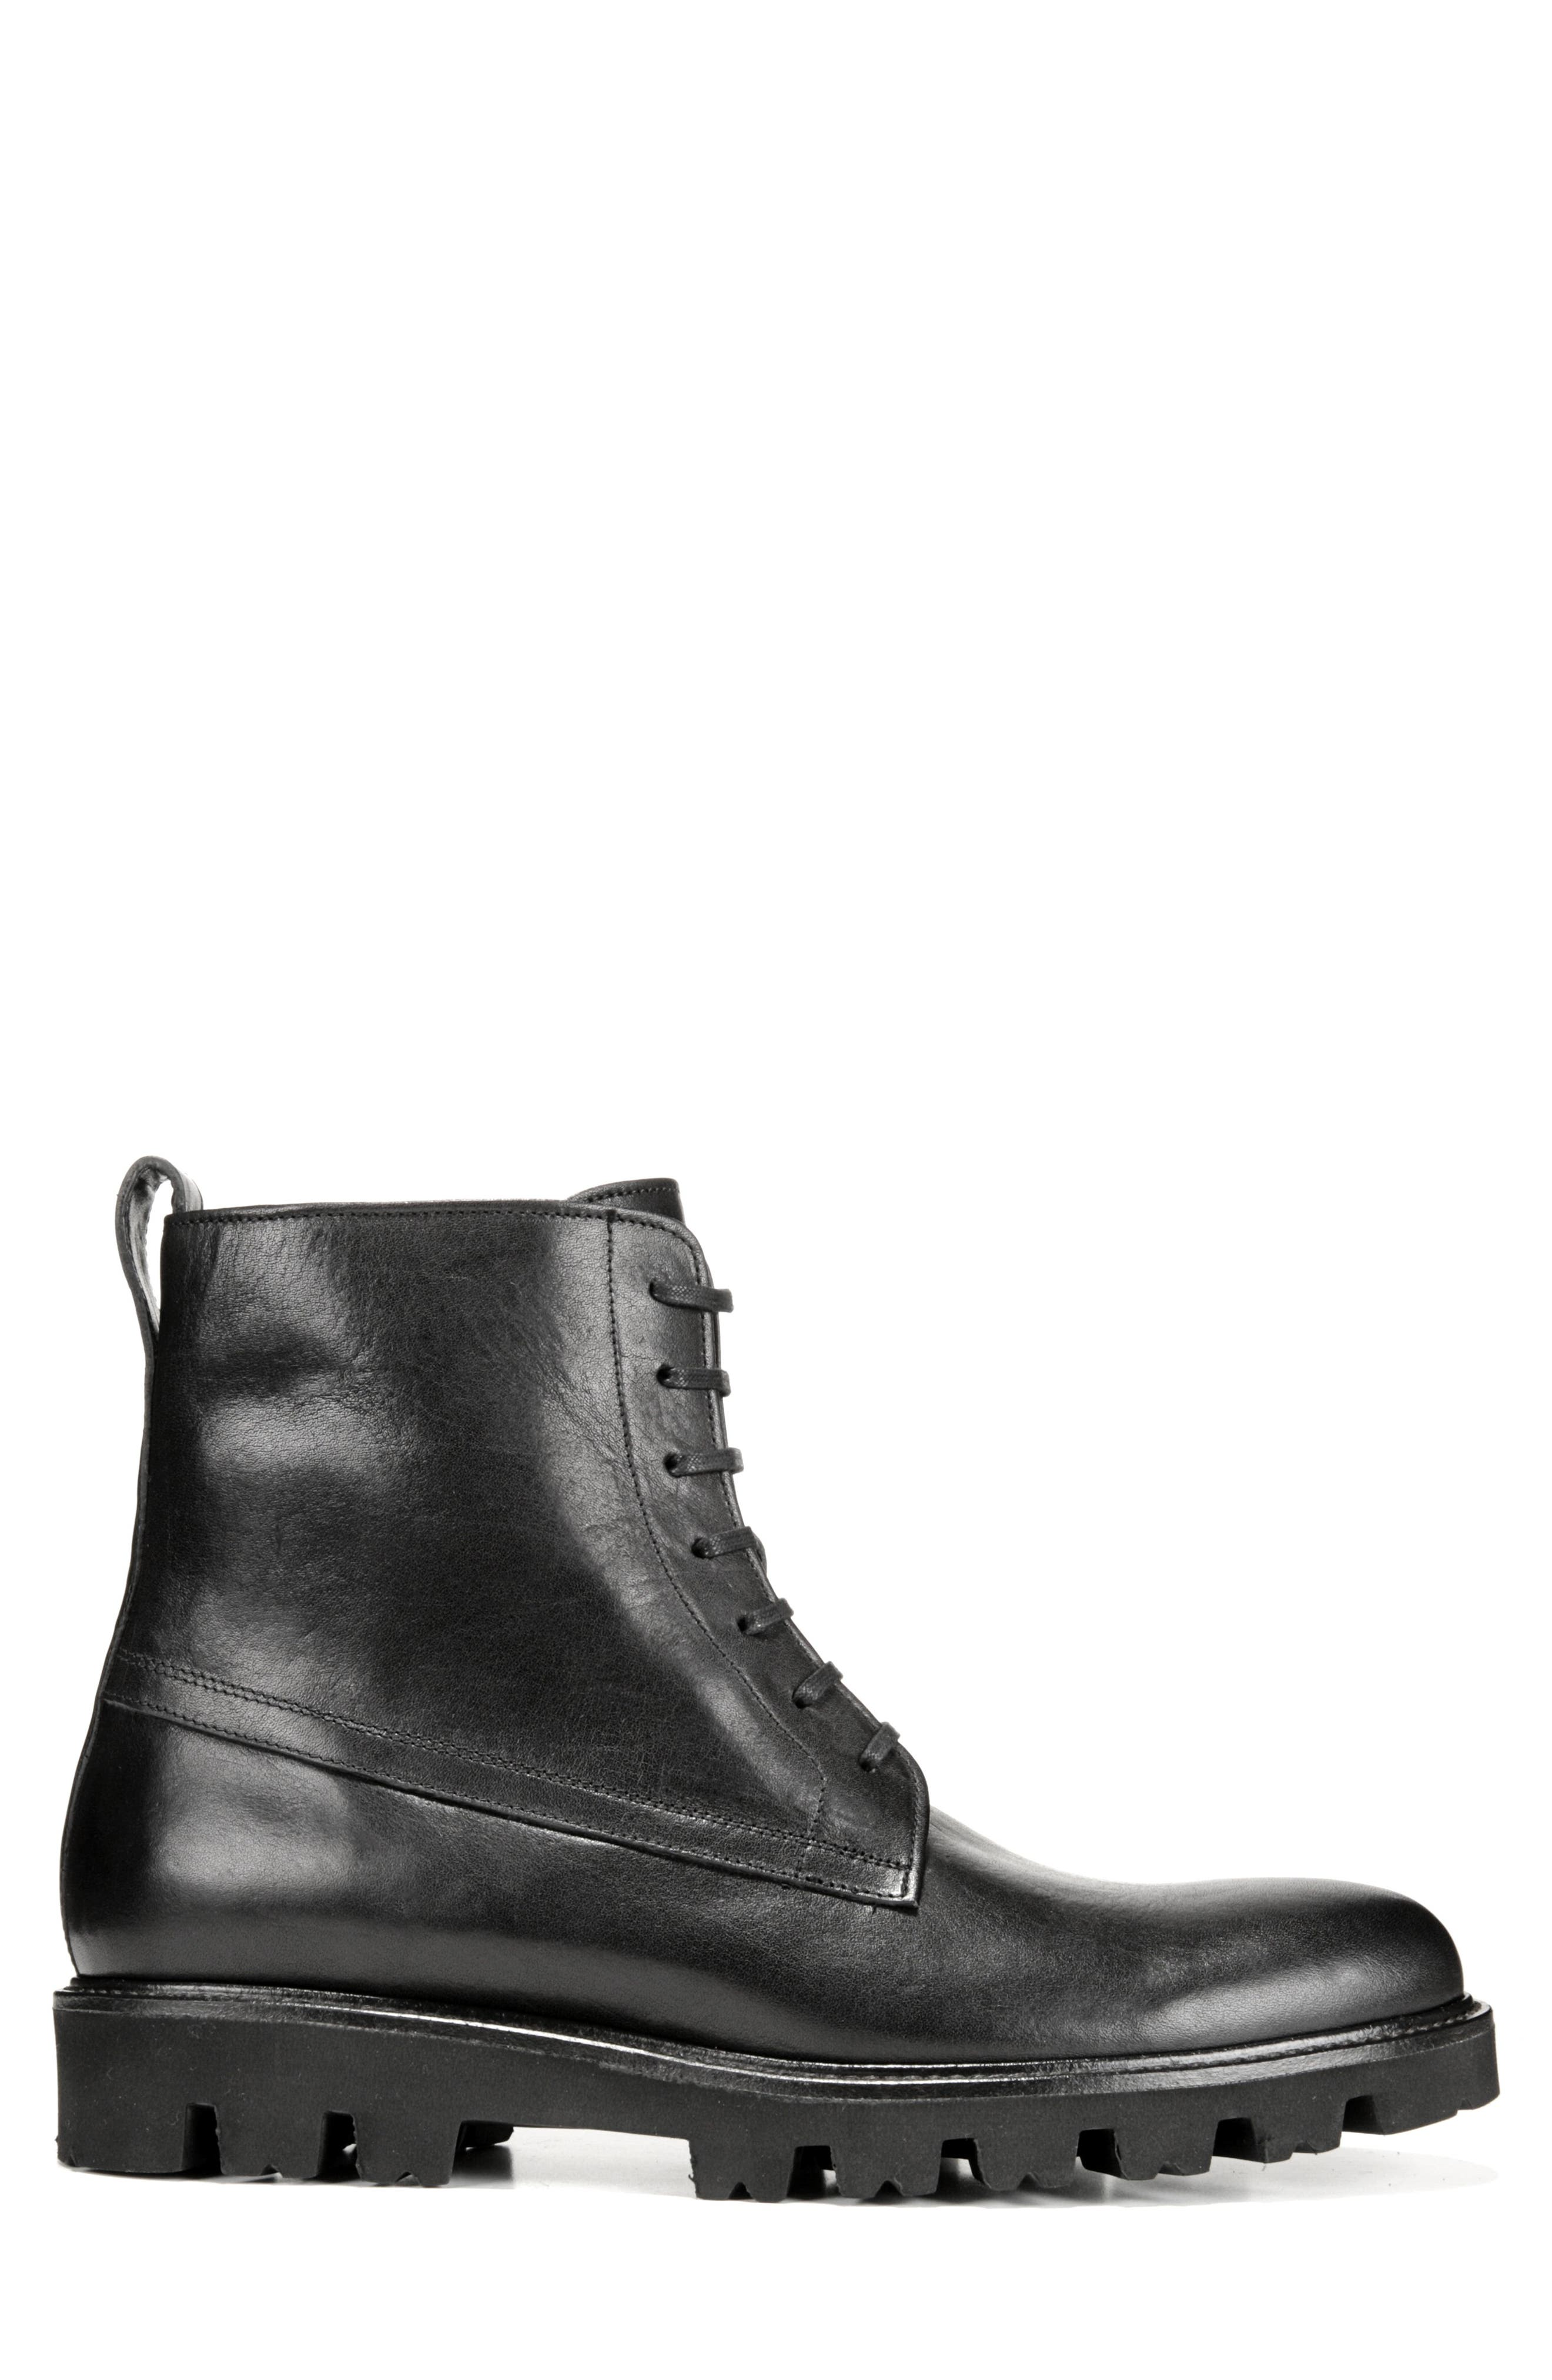 Commander Plain Toe Boot,                             Alternate thumbnail 5, color,                             Black